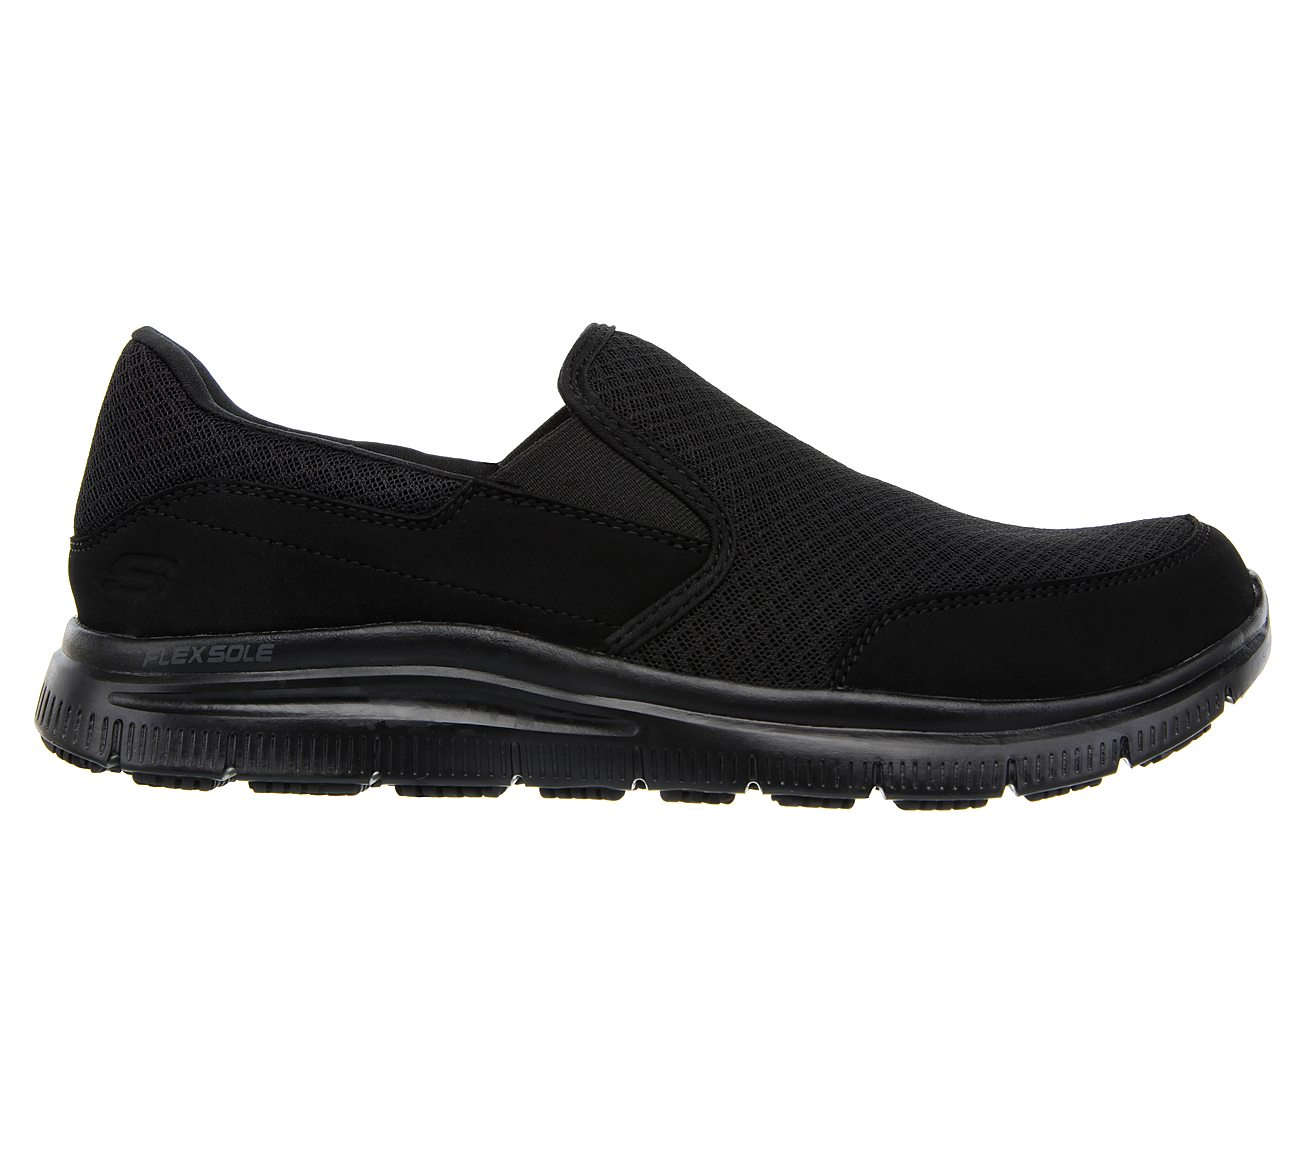 Skechers Relaxed Fit Flex ... Advantage Men's Slip-Resistant Work Shoes MSuGb2q8S4